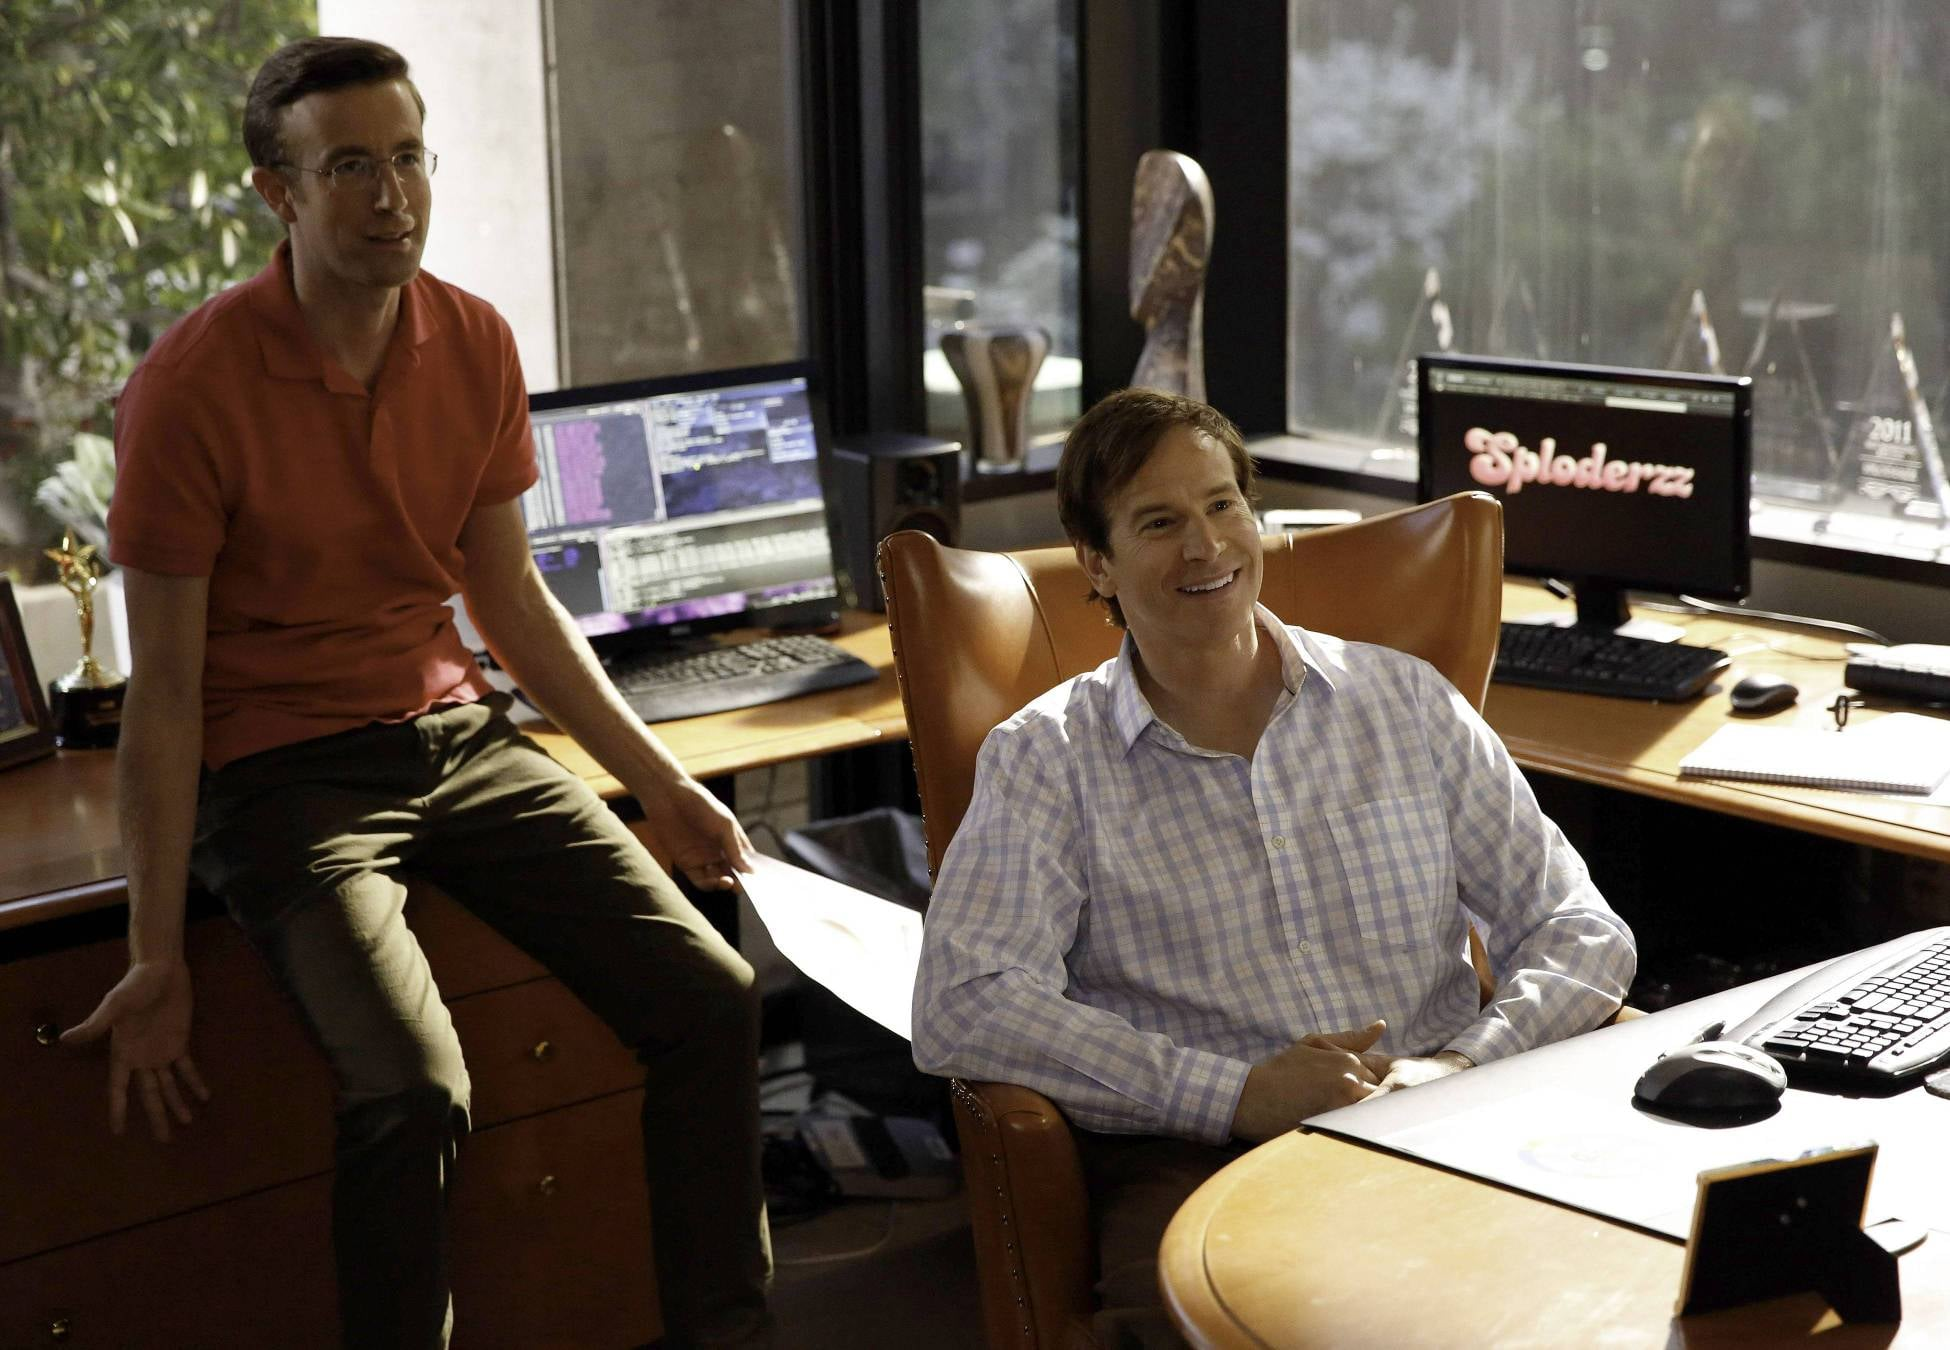 Rob Huebel and Matt Oberg guest-star in the episode as the owners of Sploderzz.com.